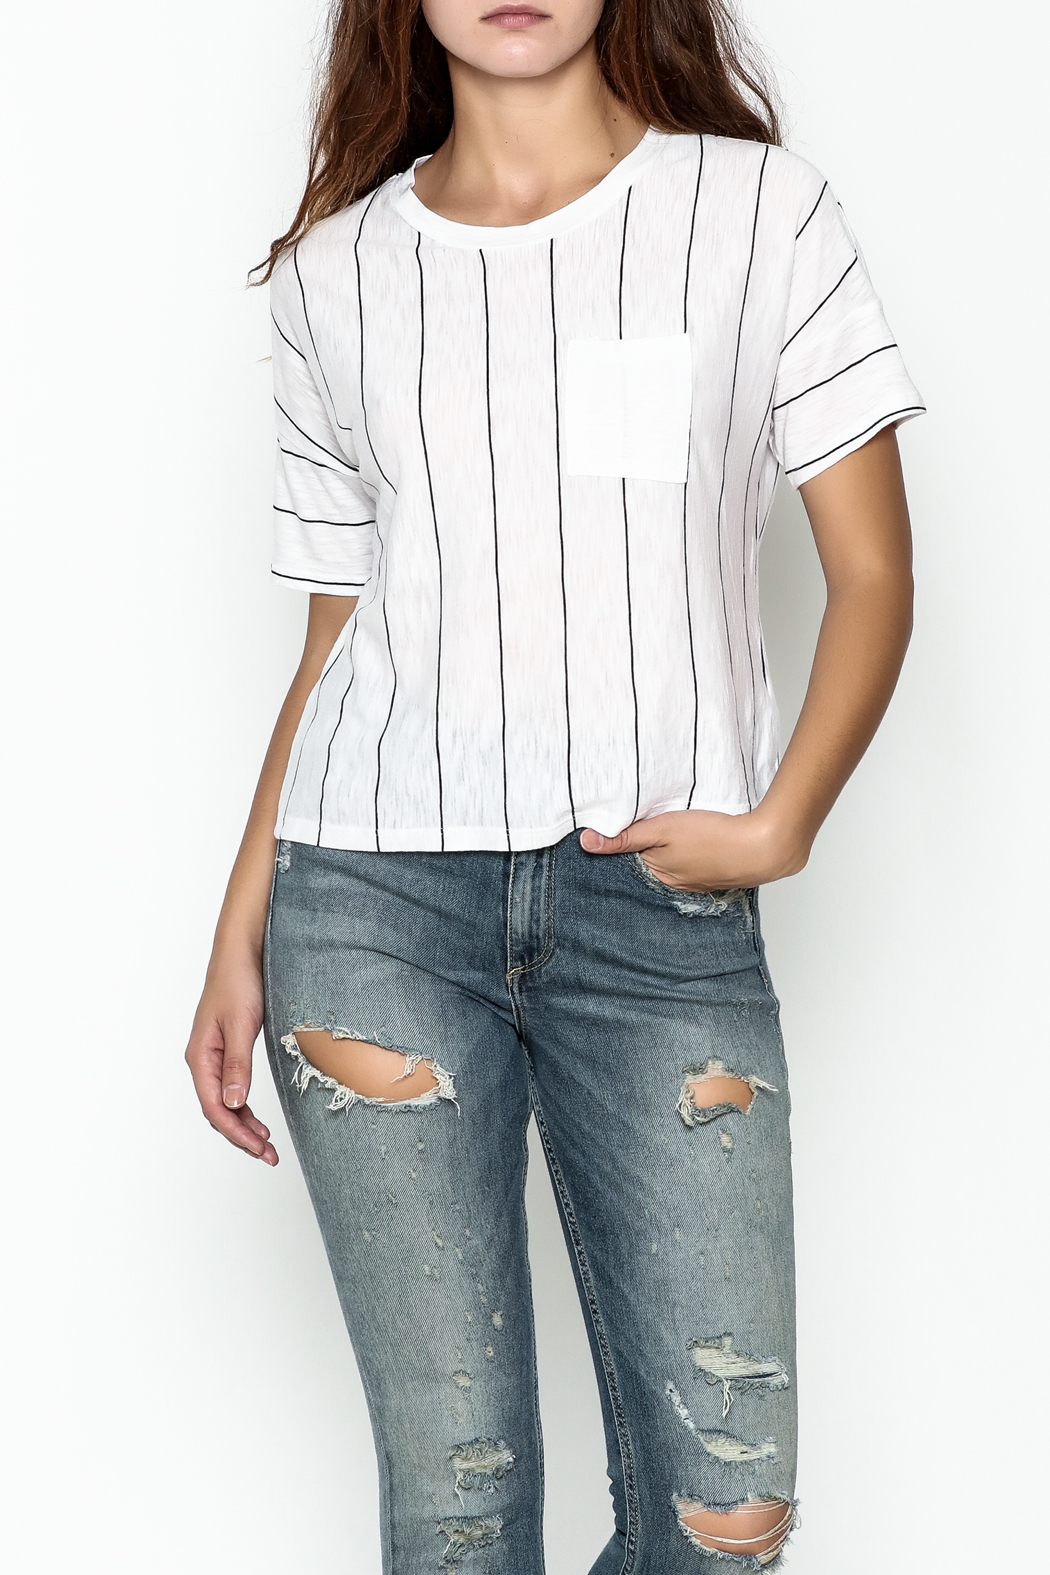 Michelle by Comune Striped Front Pocket Tee - Main Image